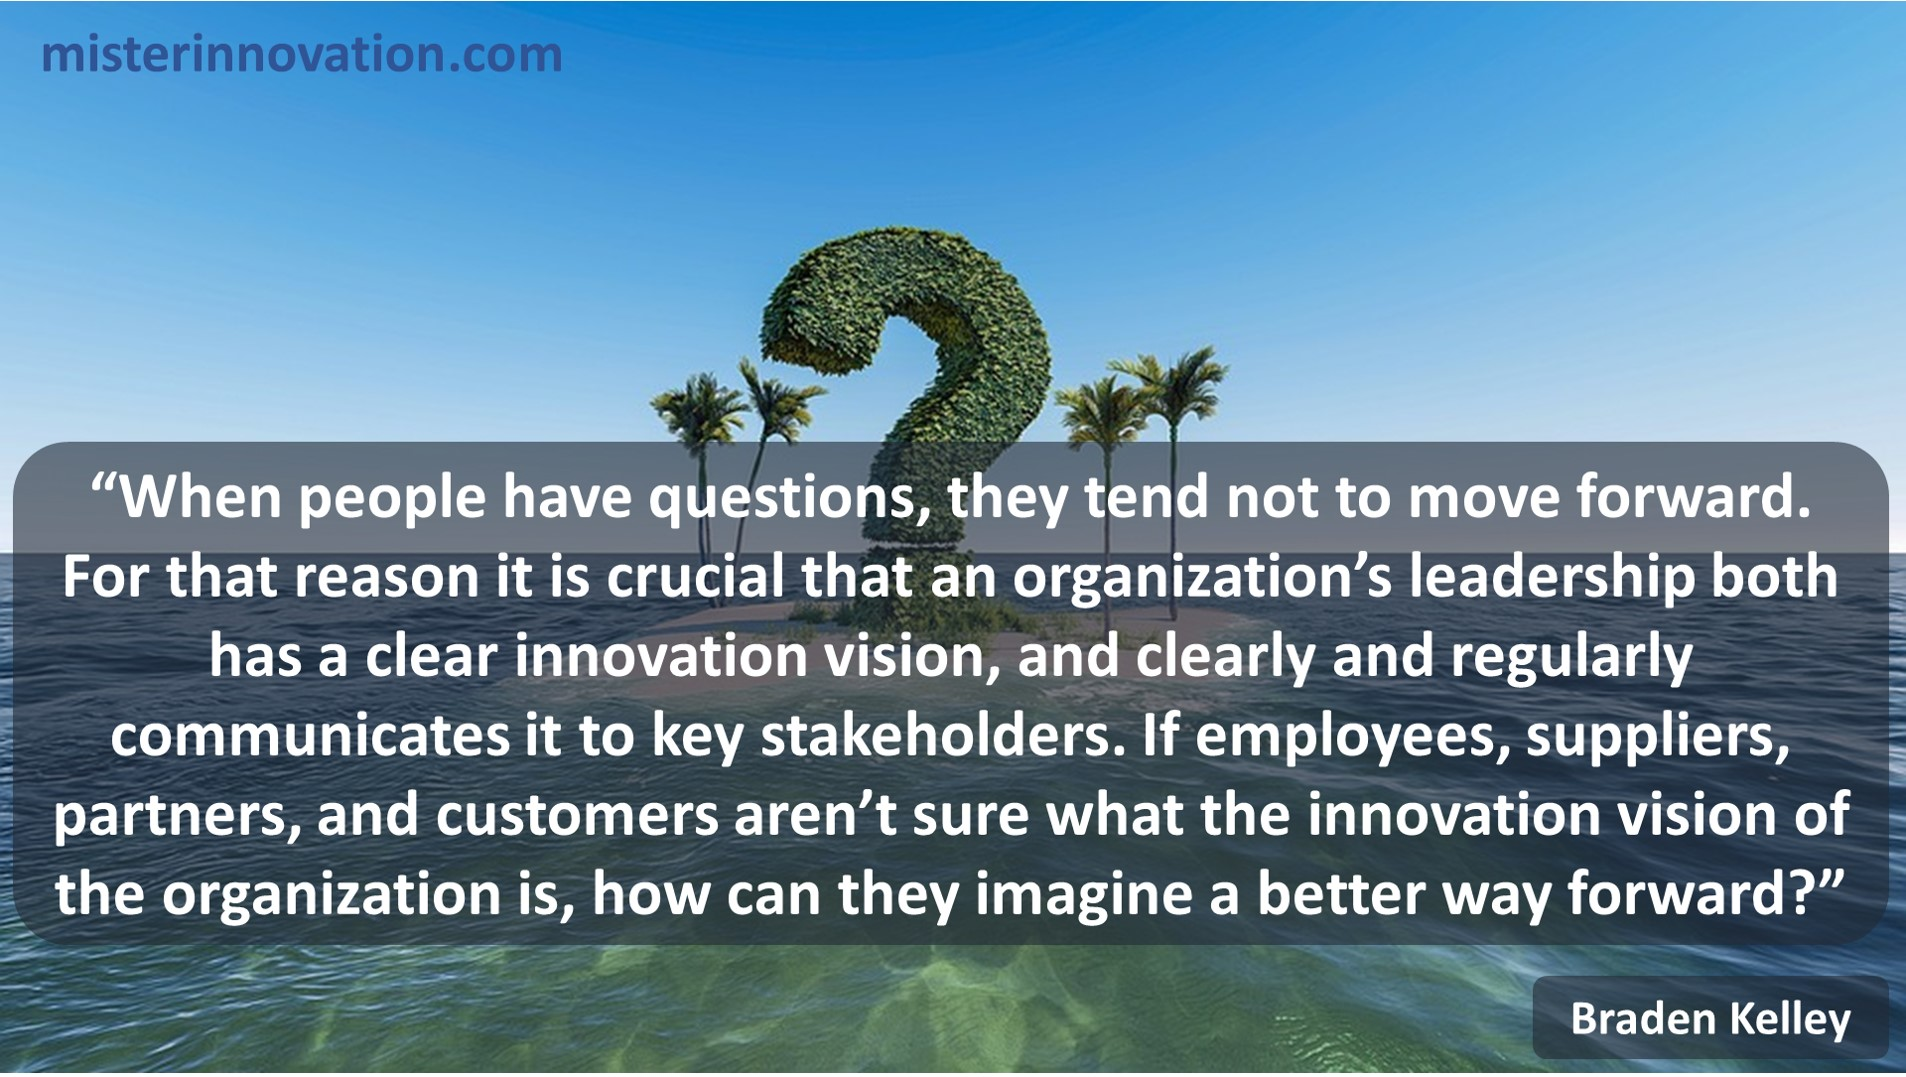 Braden Kelley Quote on How Uncertainty Slows Down Innovation